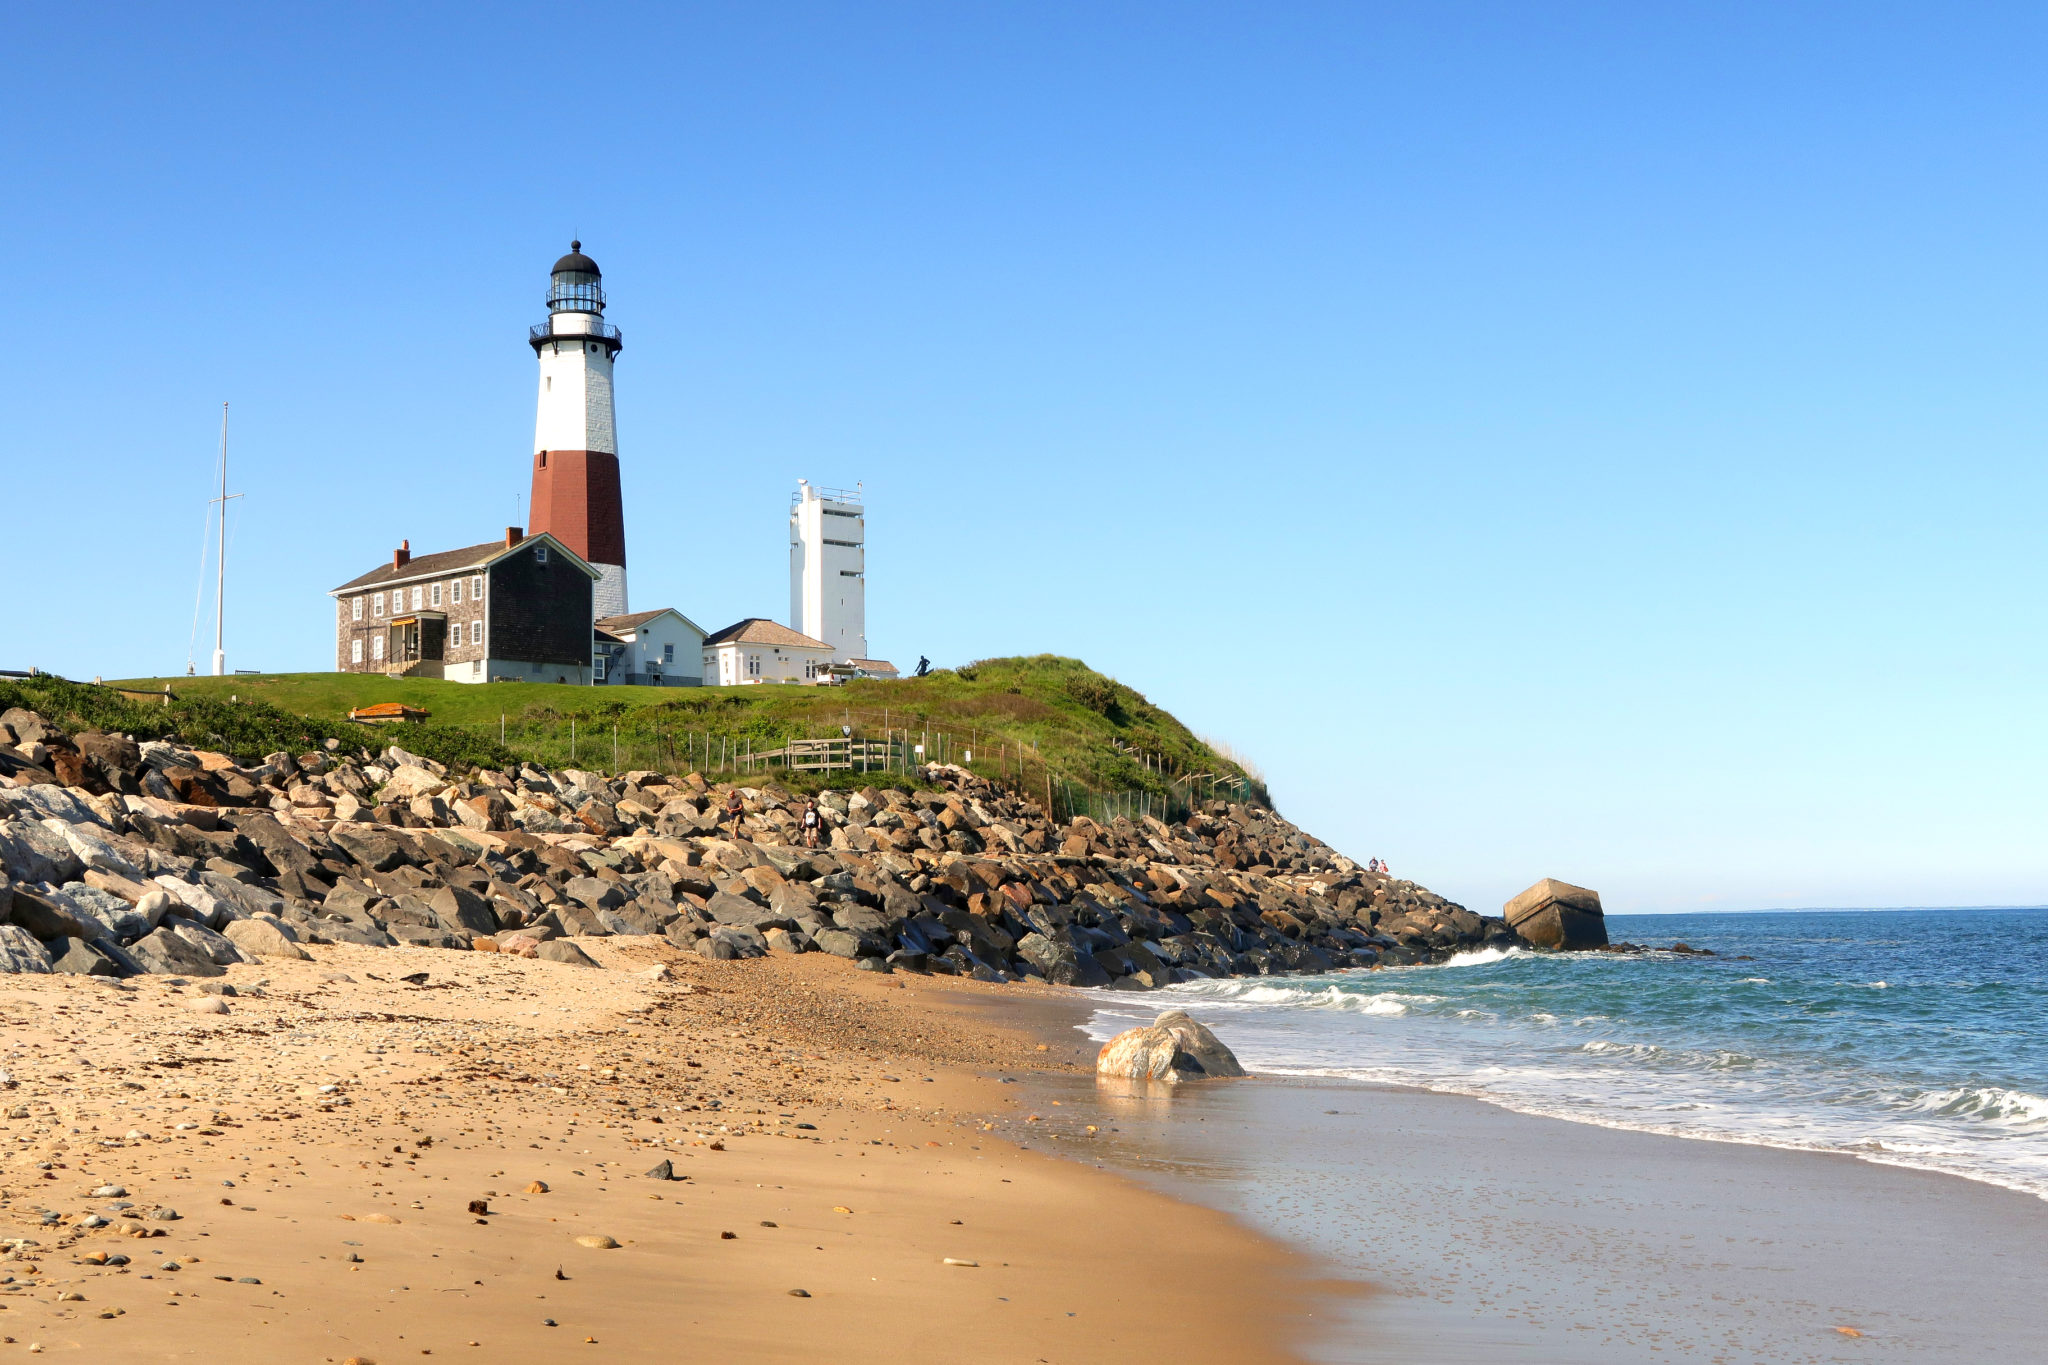 Phare de Montauk, Long Island, New York.